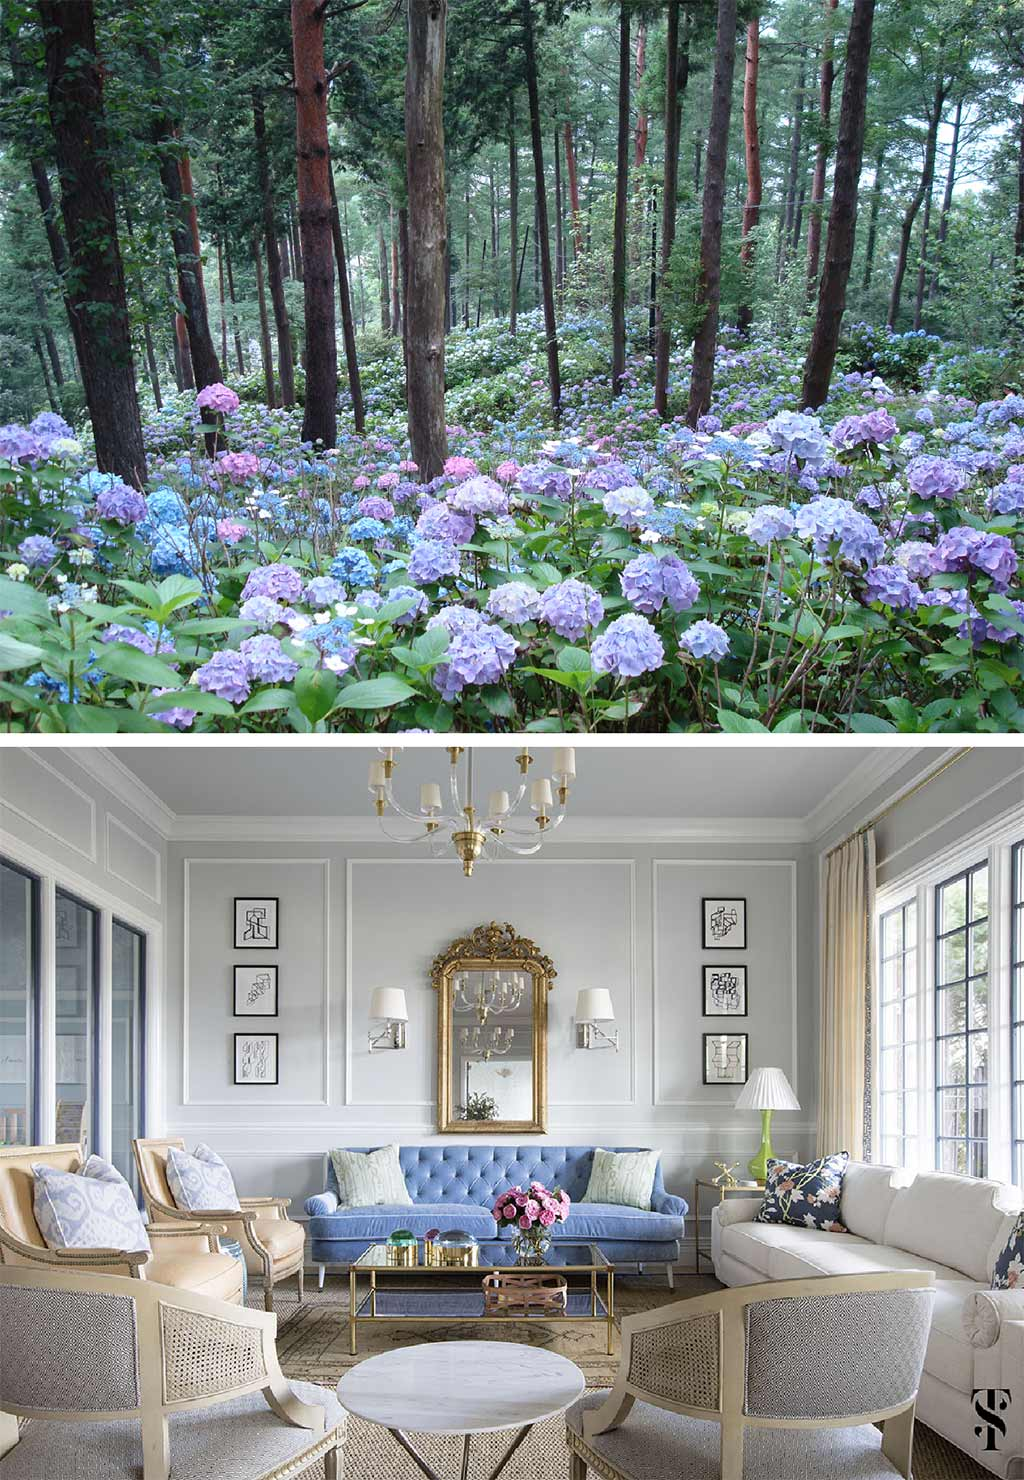 Hydrangeas, forest, Japan. Color in nature. Chic dental office by Summer Thornton Design